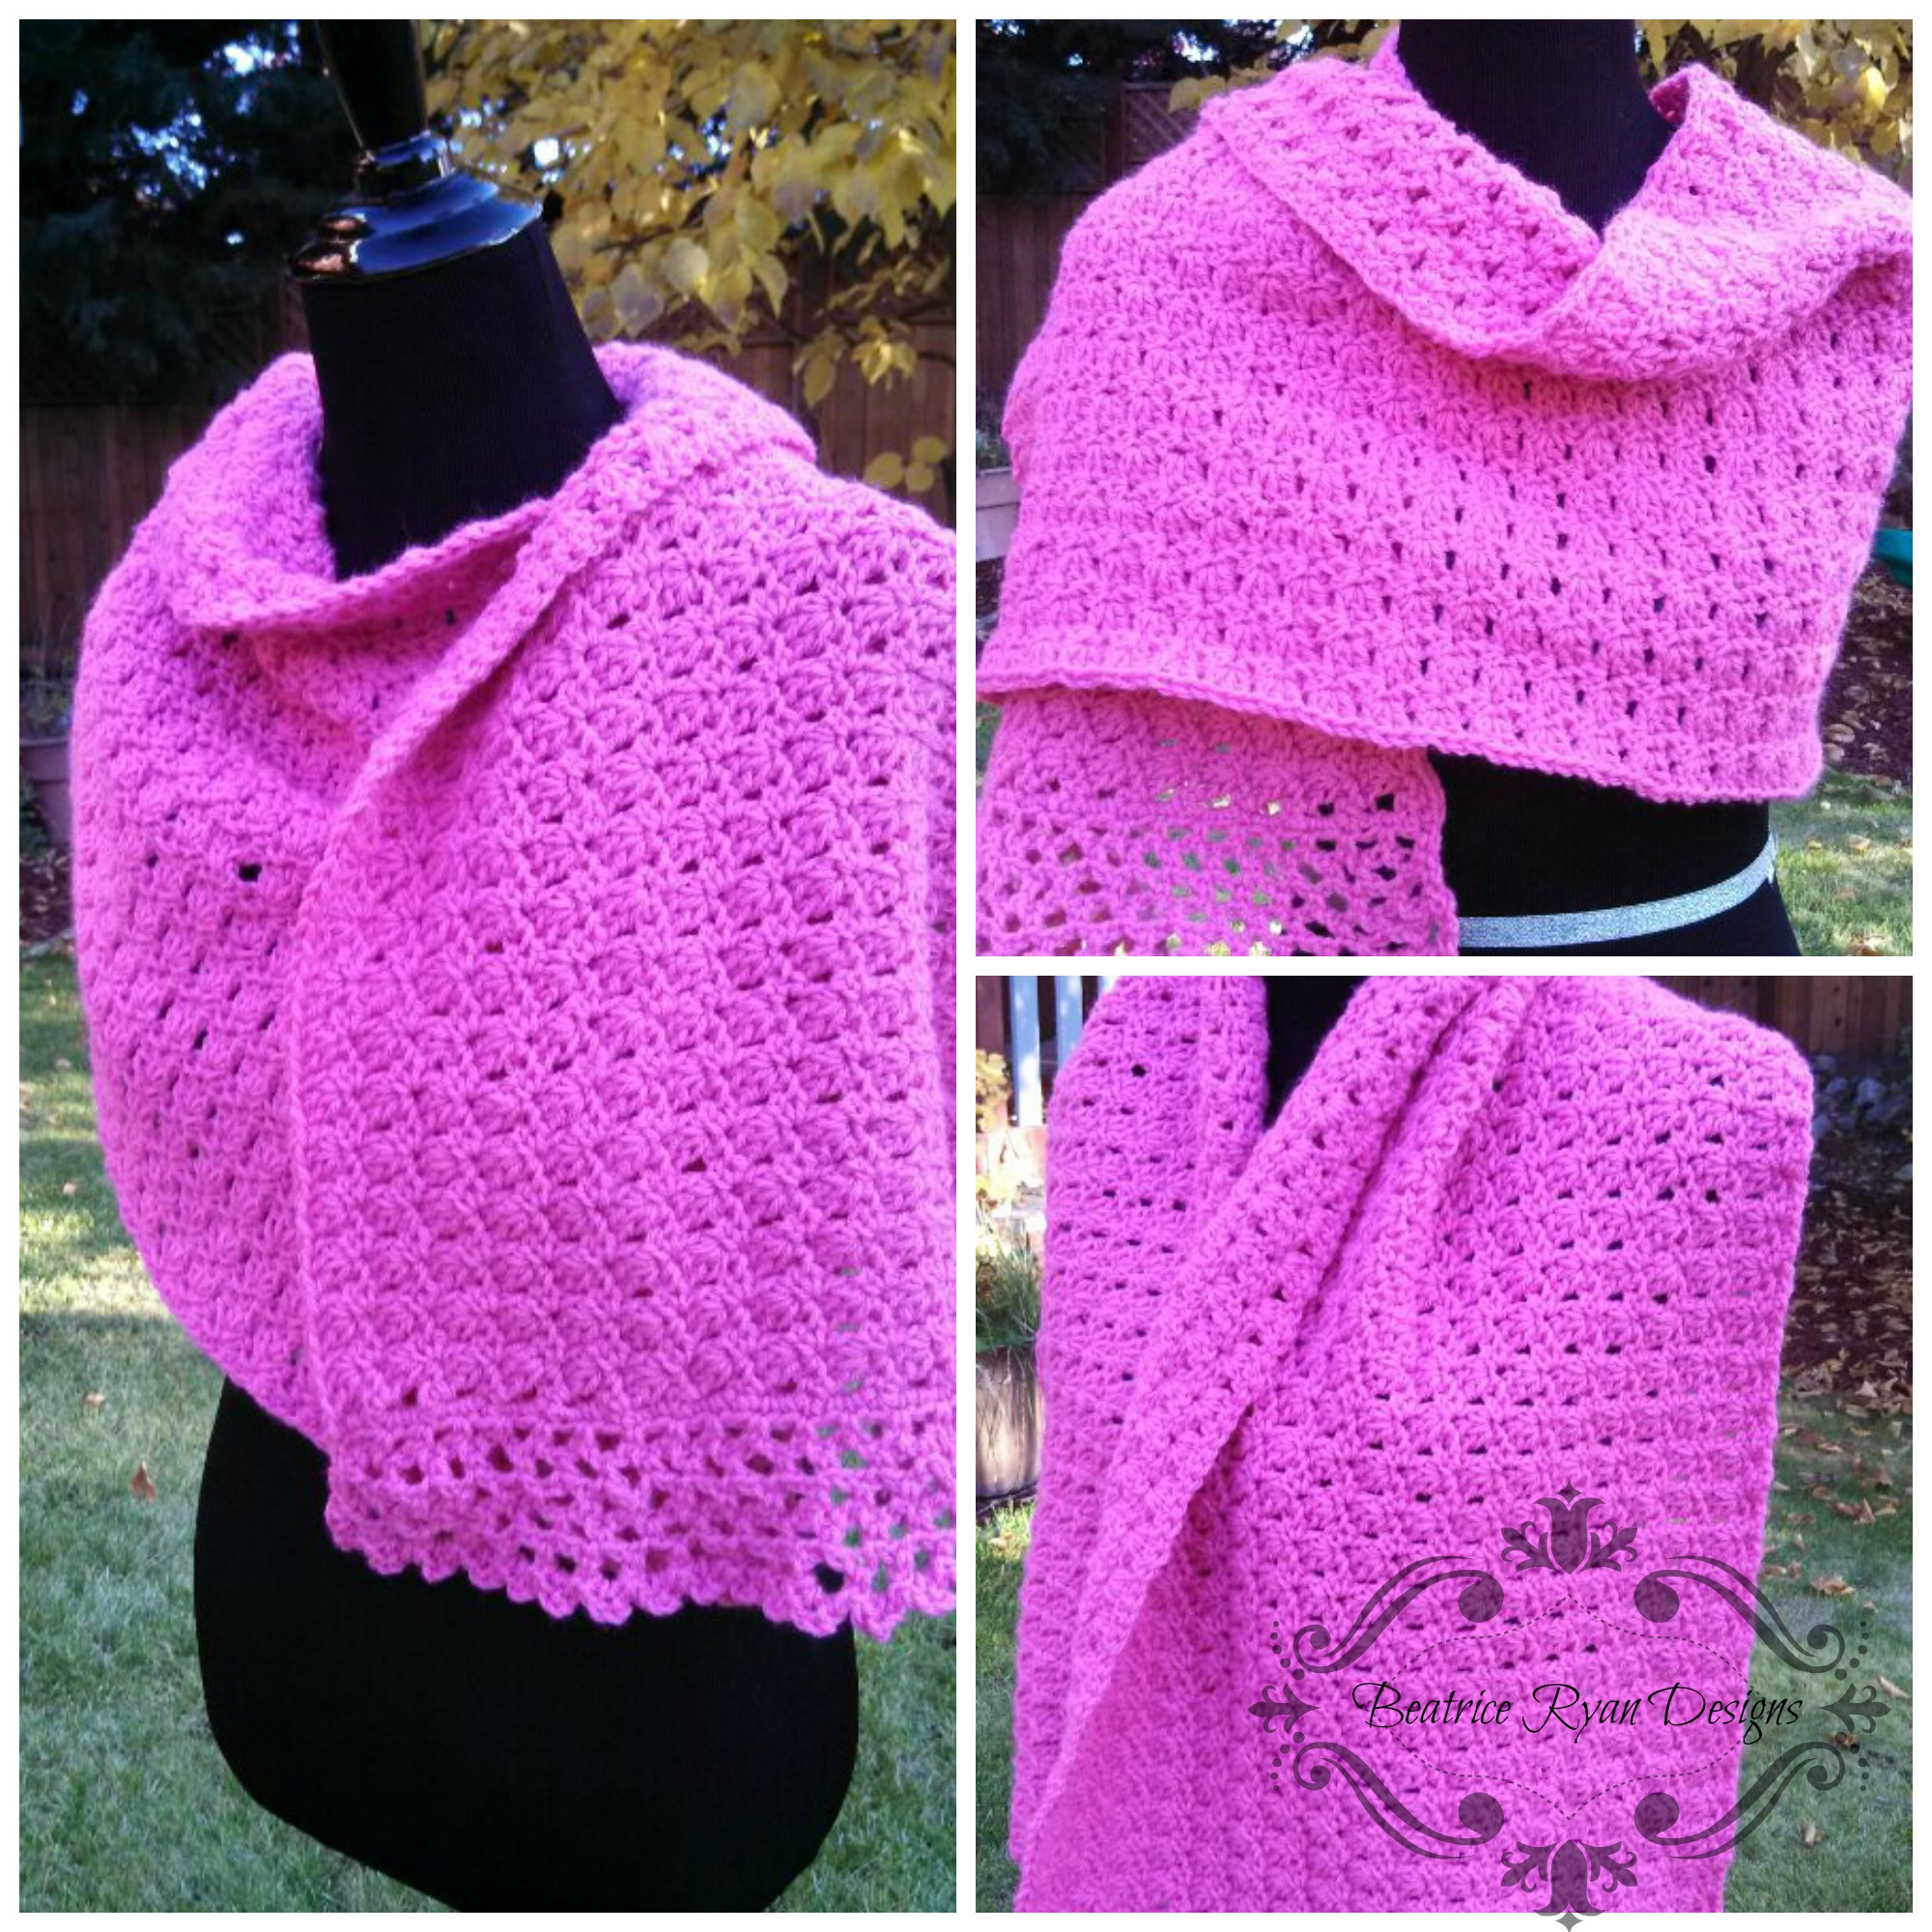 Free Easy Crochet Patterns For Prayer Shawls : Amazing Grace Prayer Shawl- Free Crochet Pattern